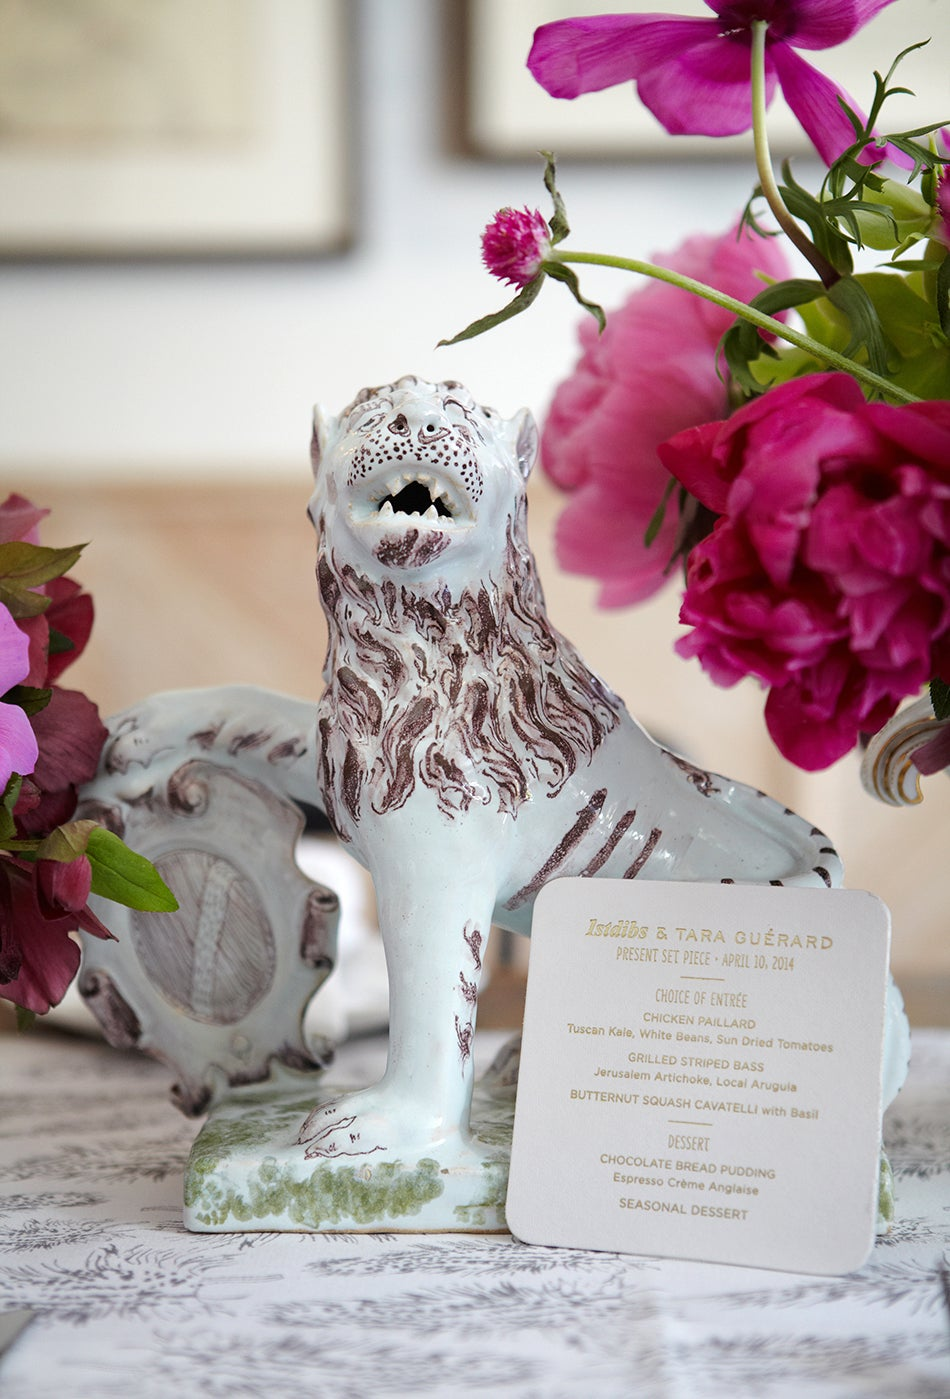 For a recent luncheon she co-hosted with 1stdibs in Manhattan, Guérard selected a mid-19th-century faience lion from Bardith to adorn the main table.